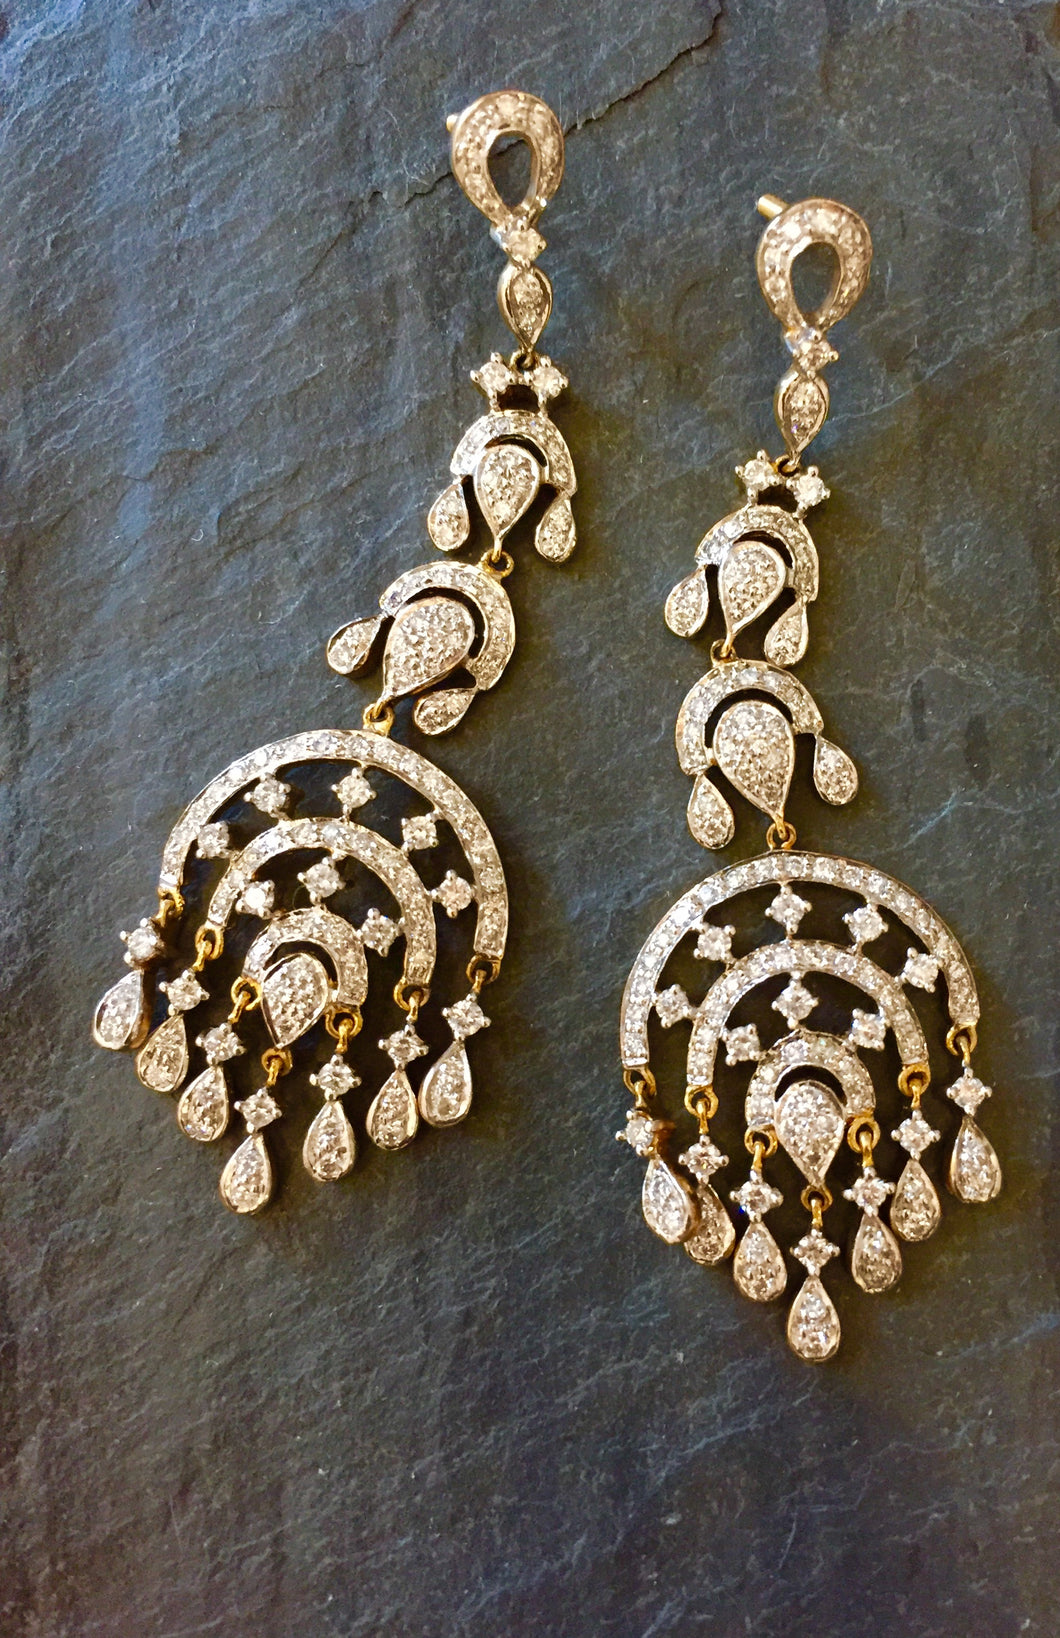 Chandelier 18K Gold Earrings